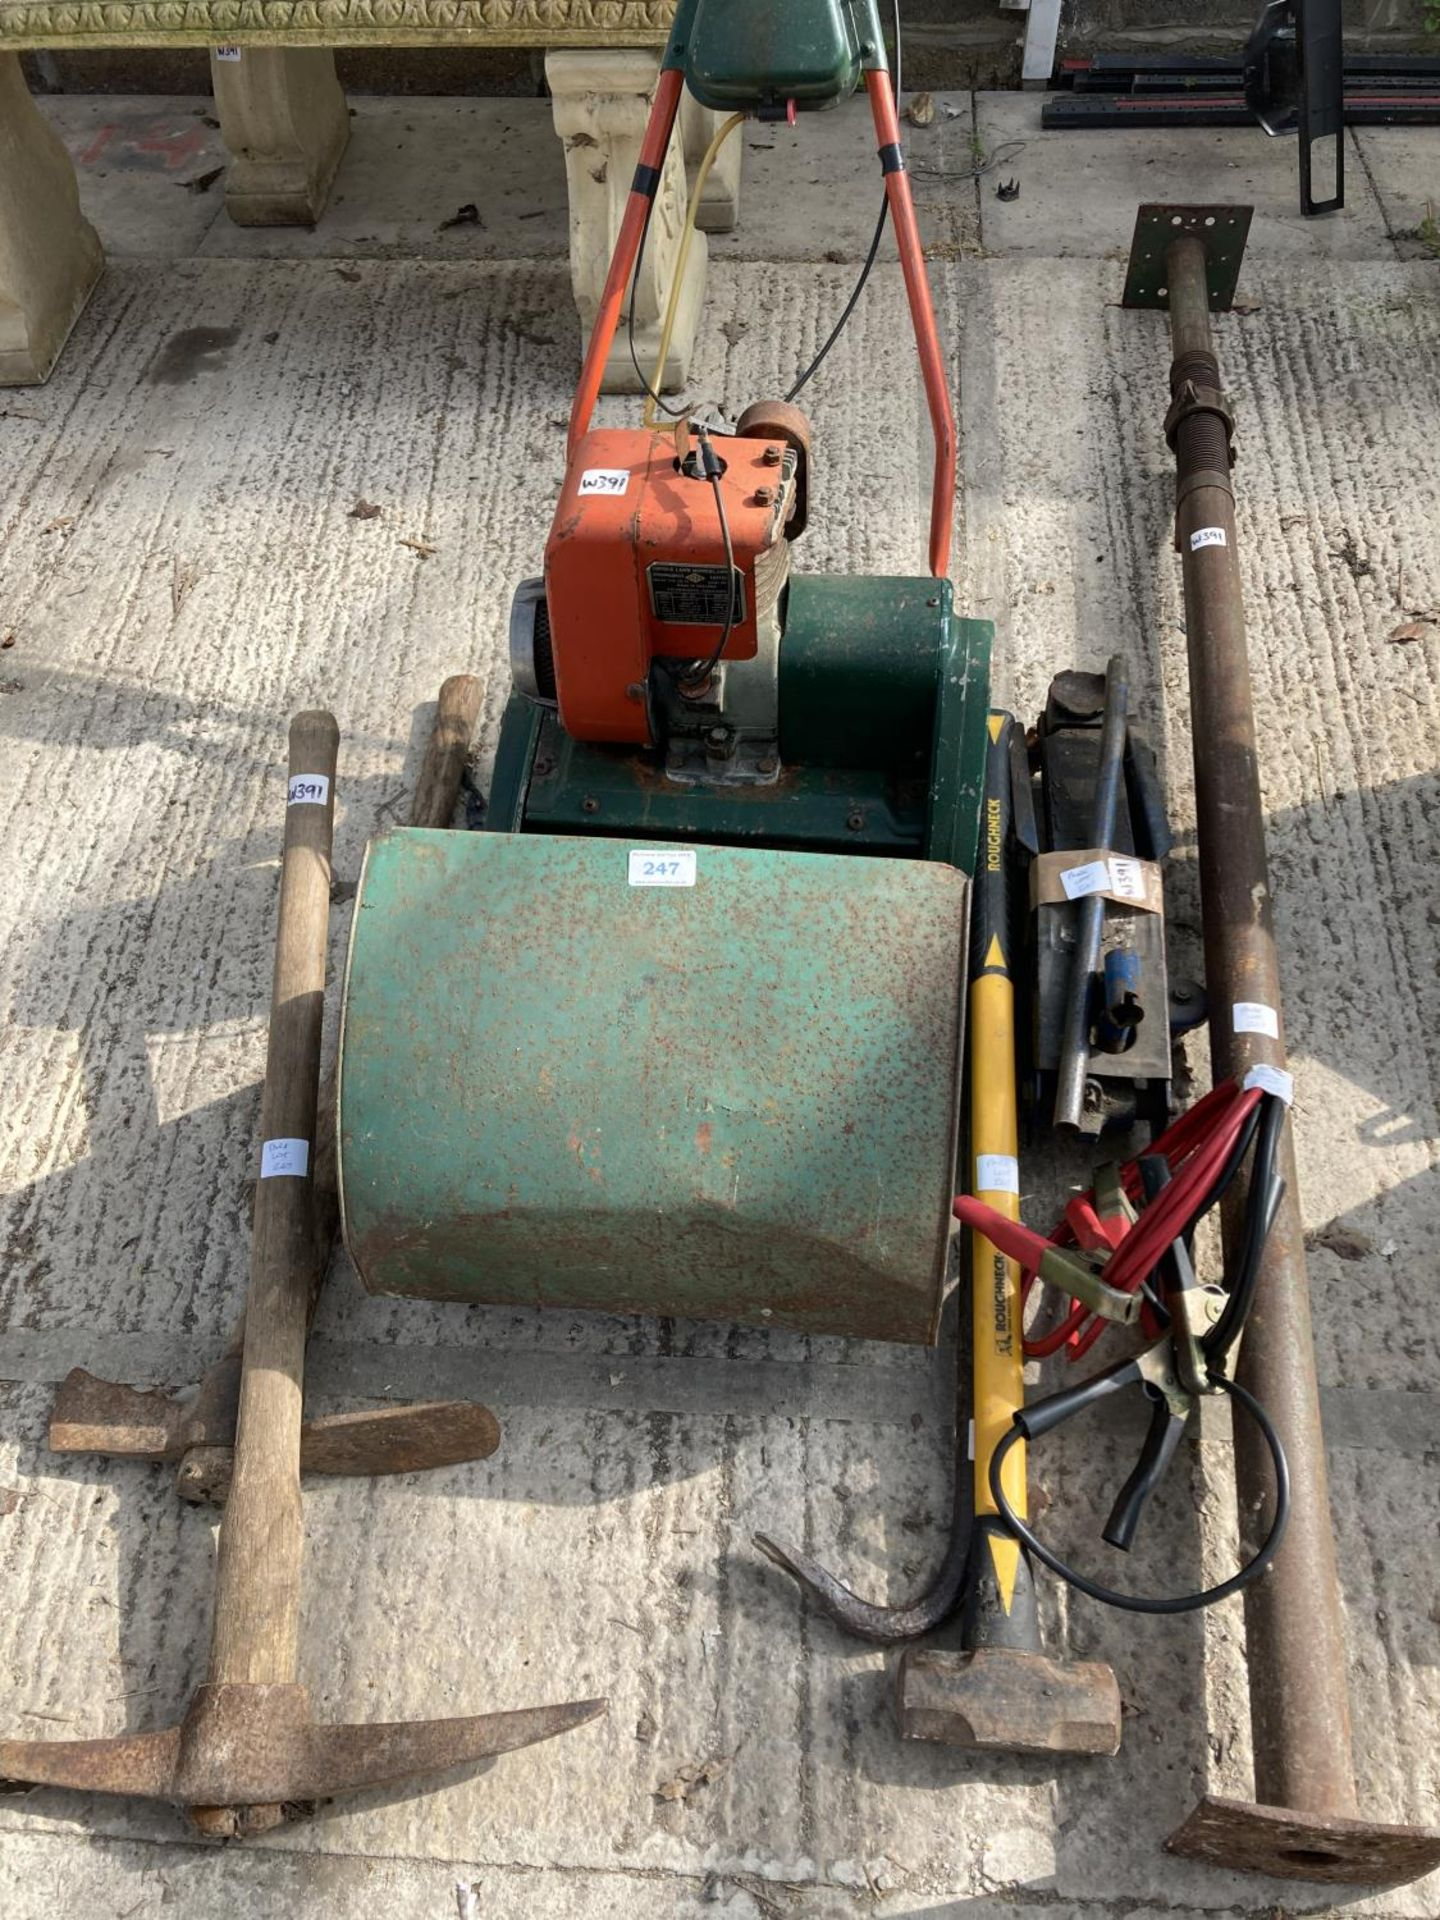 VARIOUS ITEMS TO INCLUDE AN PETROL LAWN MOWER, ACRO PROP, SLEDGE HAMMER, PICK, TROLLEY JACK, JUMP